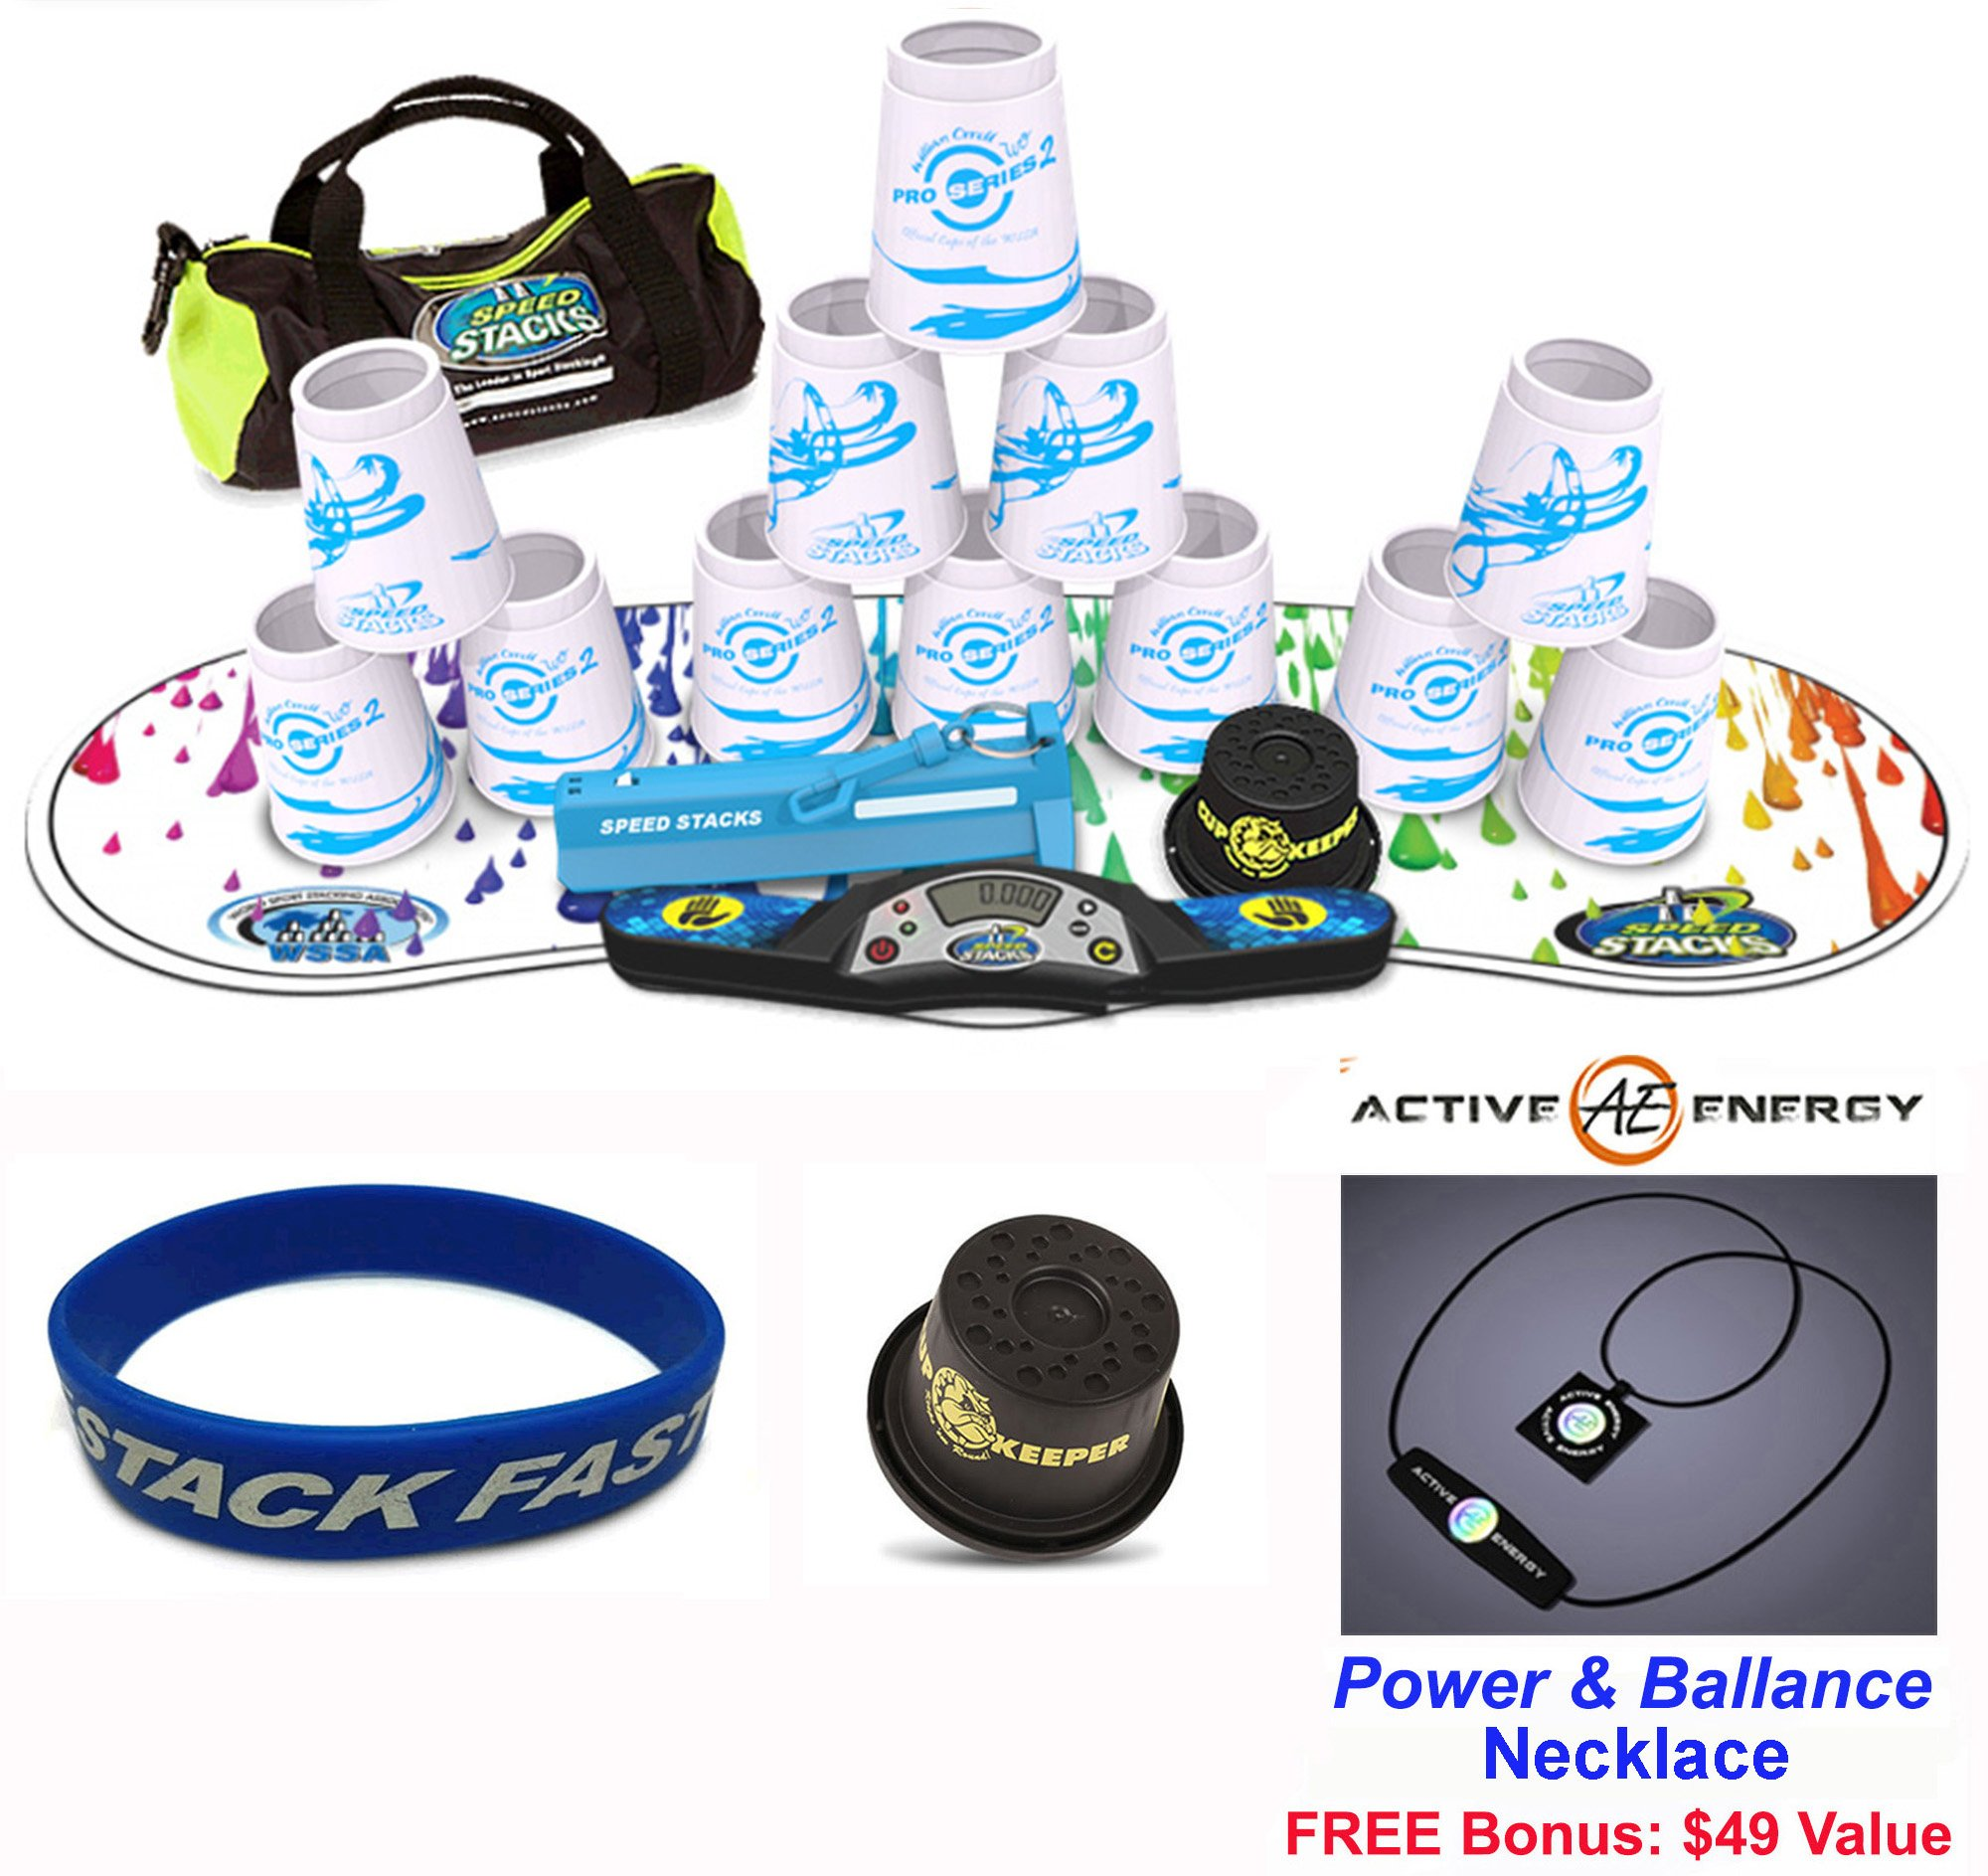 Speed Stacks Combo Set ''The Works'': 12 PRO Series #2 4'' Cups, RAINBOW DROP Gen 3 Mat, G4 Pro Timer, Cup Keeper, Stem, Gear Bag, Speed Stacks Wristband + Active Energy Necklace